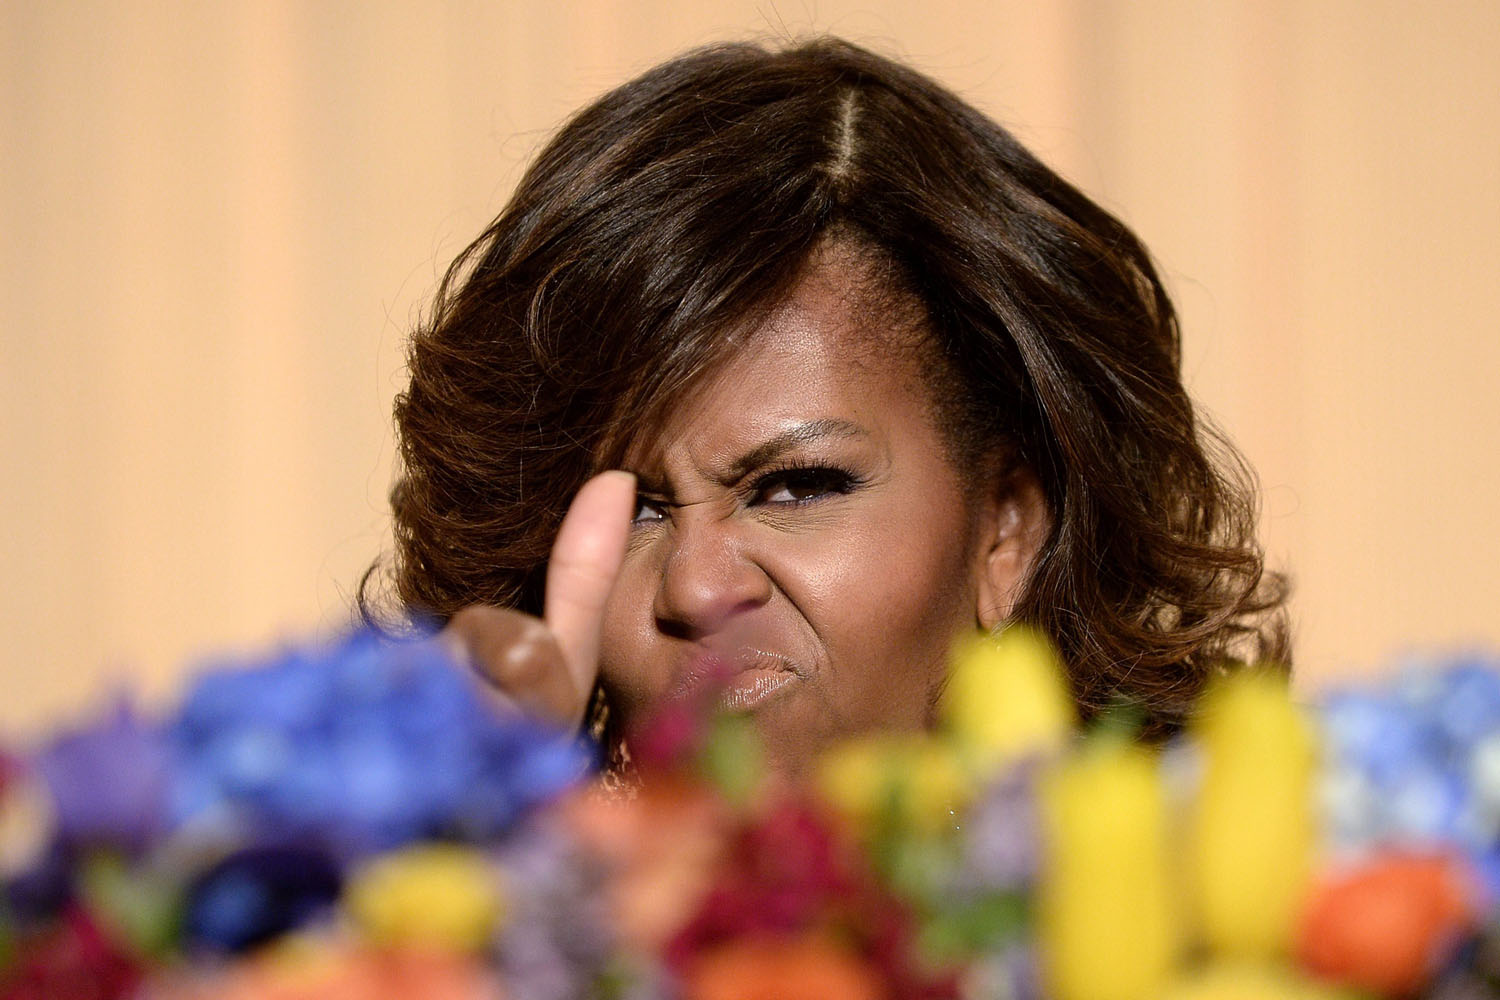 First Lady Michelle Obama gives a thumbs up at the annual White House Correspondent's Association Gala at a hotel in Washington, DC, USA,  May 3, 2014.